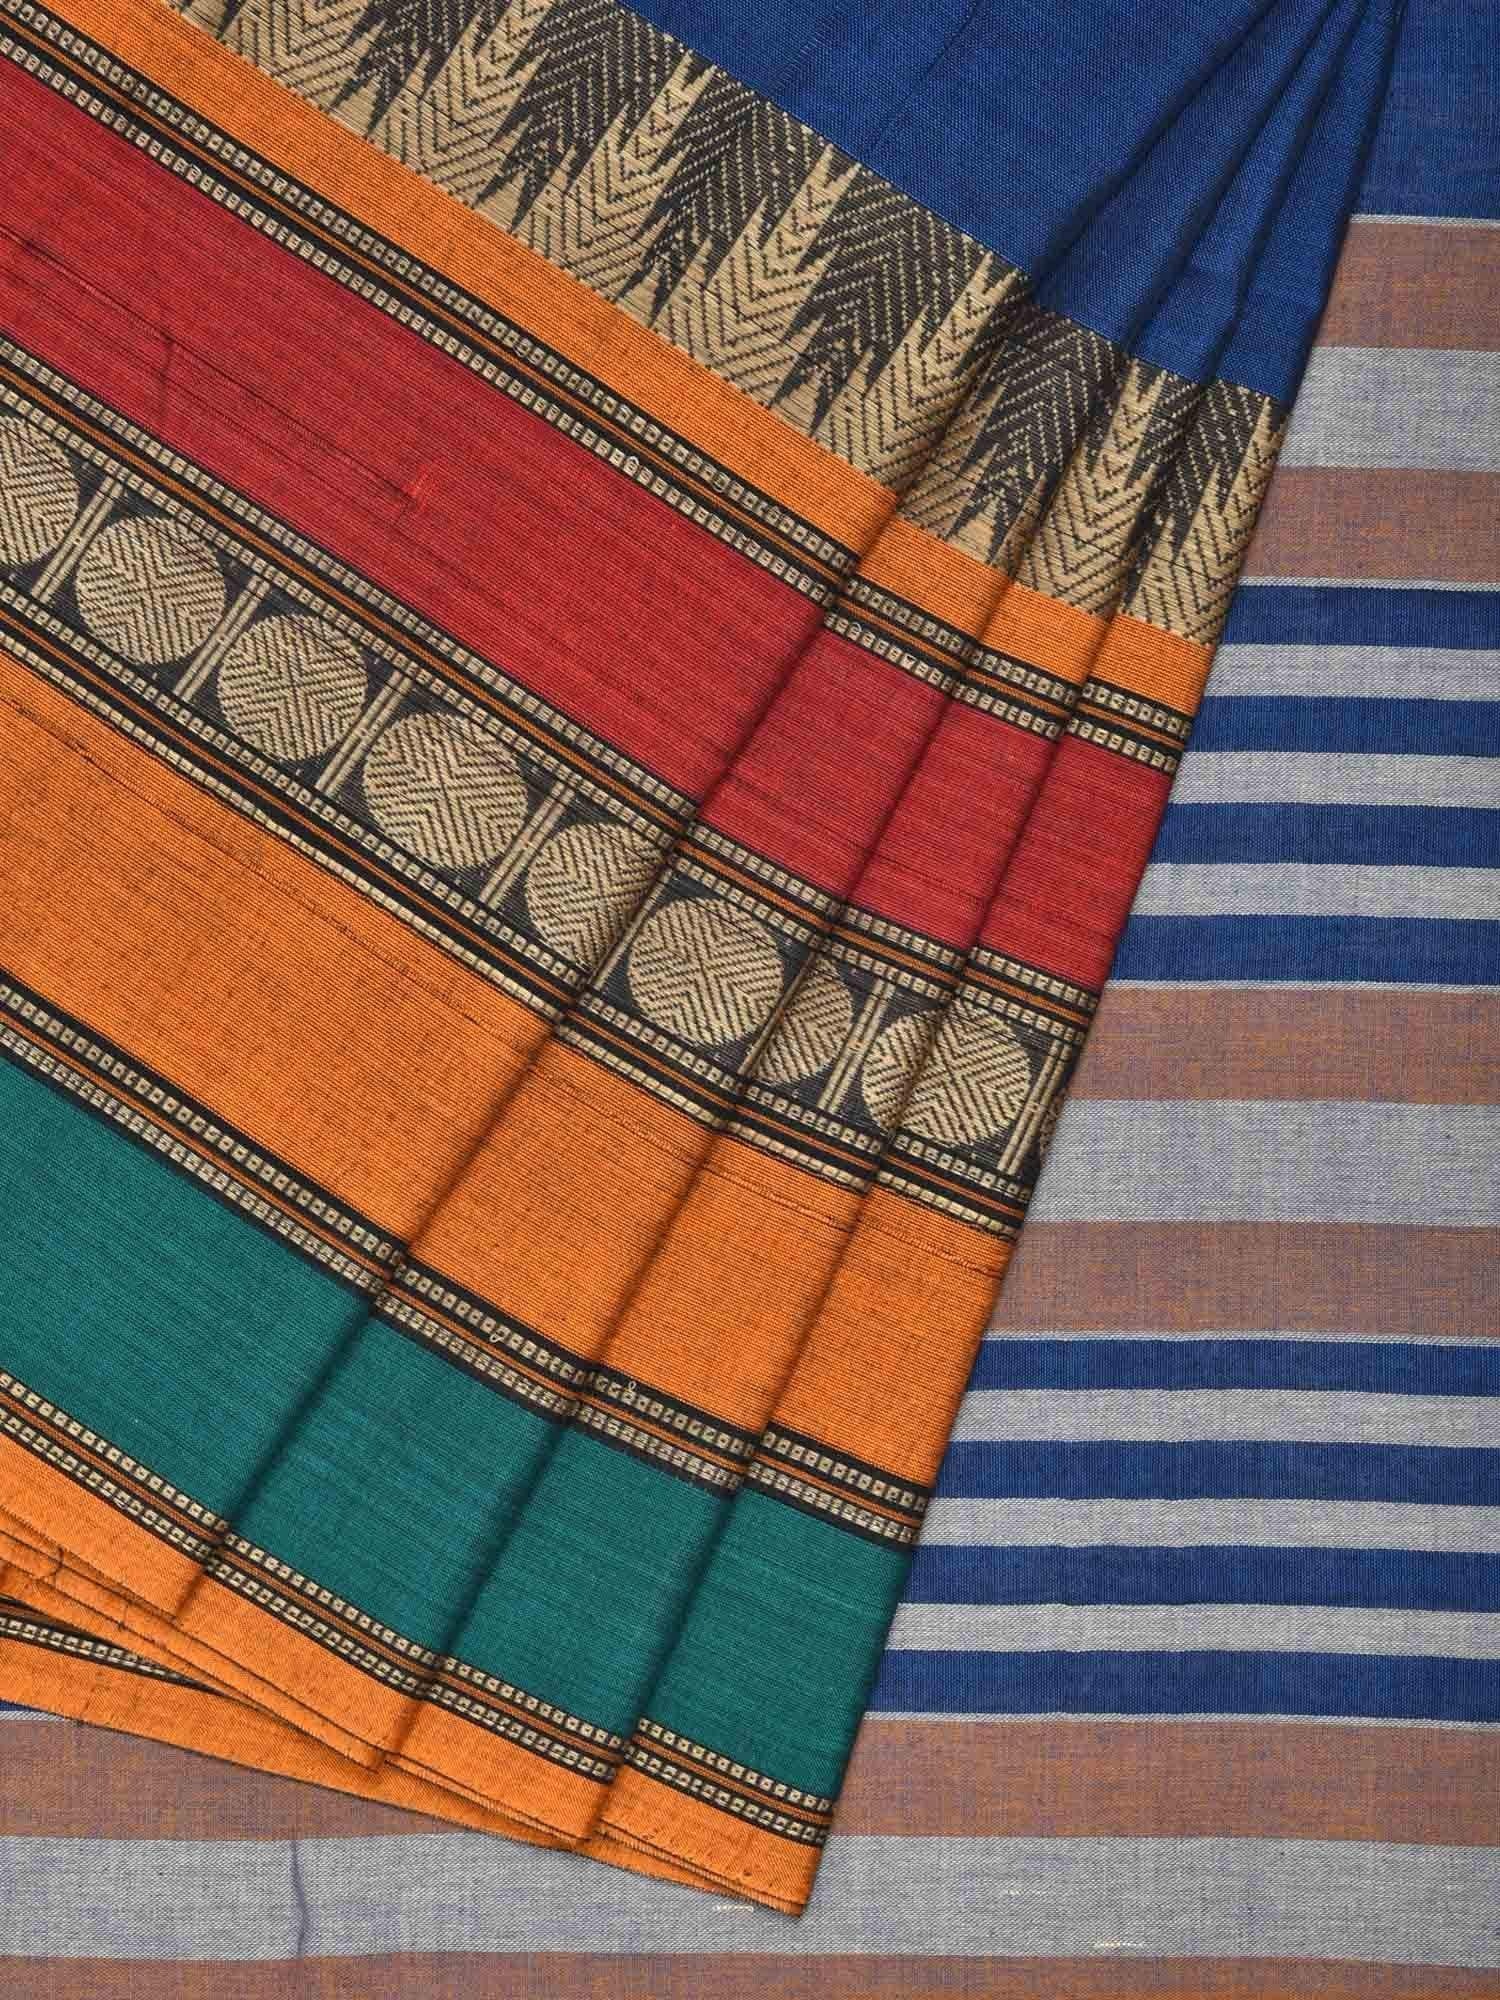 Blue Narayanpet Cotton Handloom Plain Saree with One Side Big Border Design No Blouse  np0215